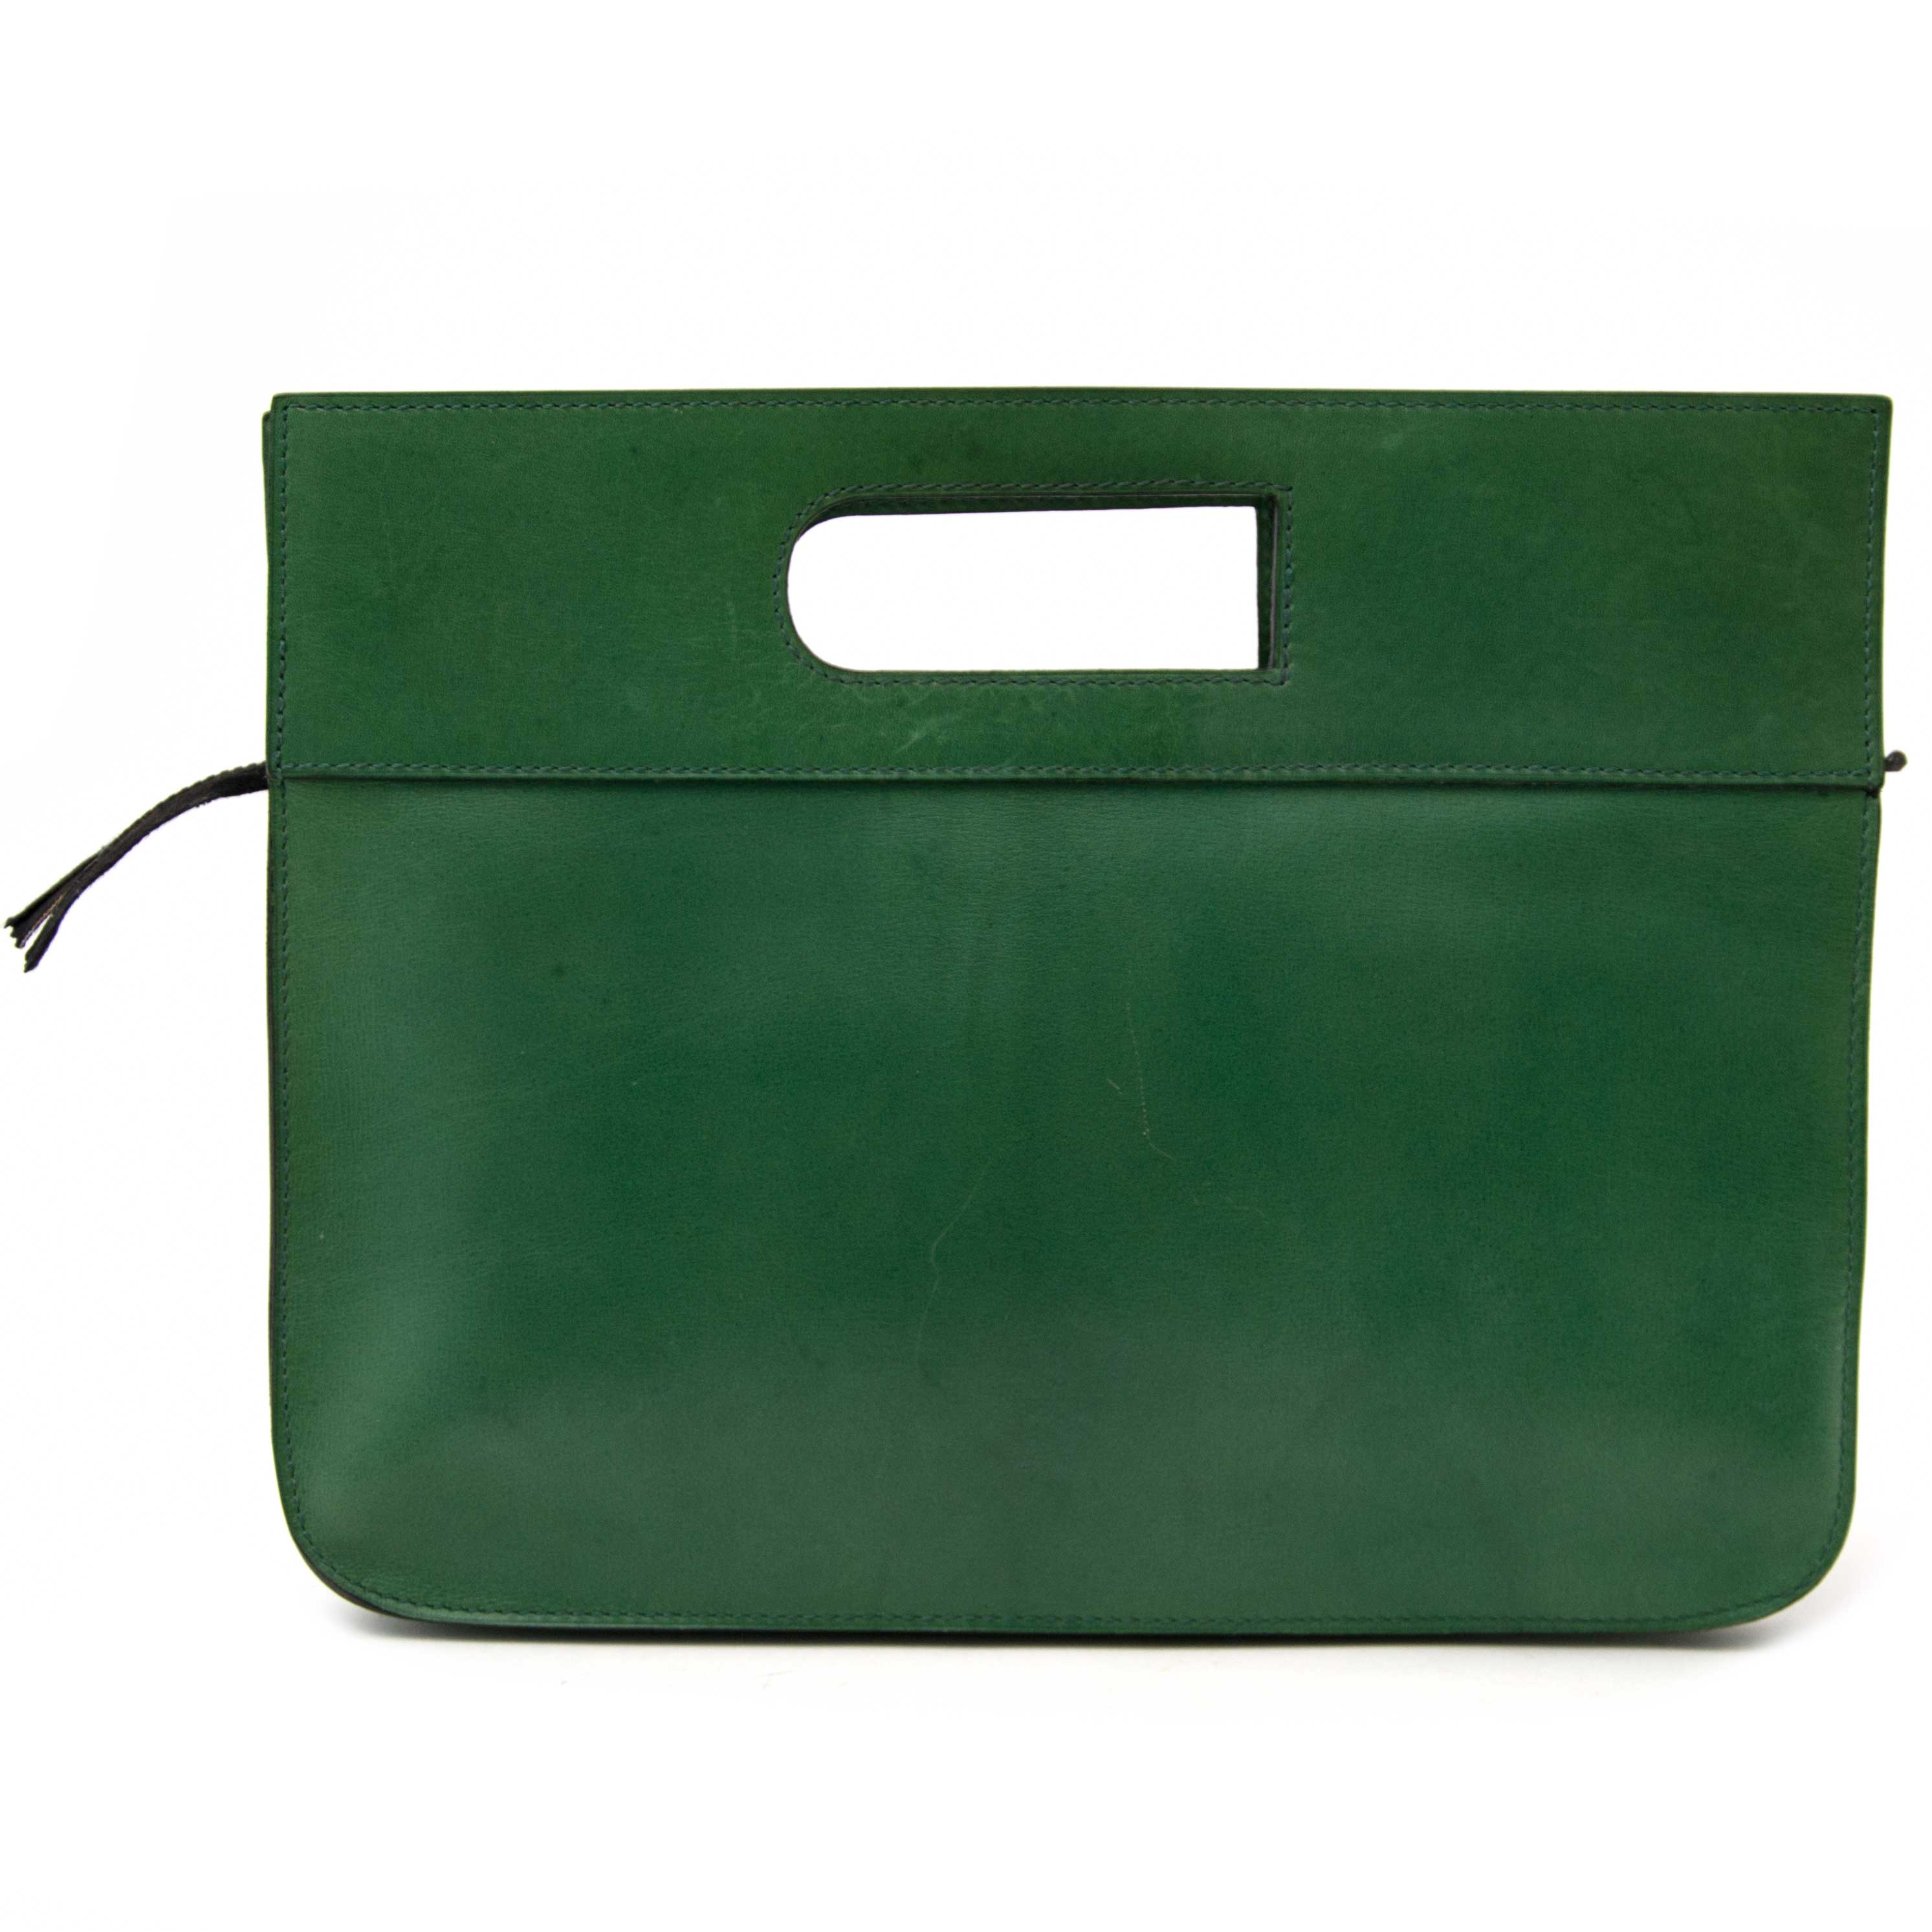 Buy and sell your authentic Delvaux Green Leather D Clutch and designer accessories